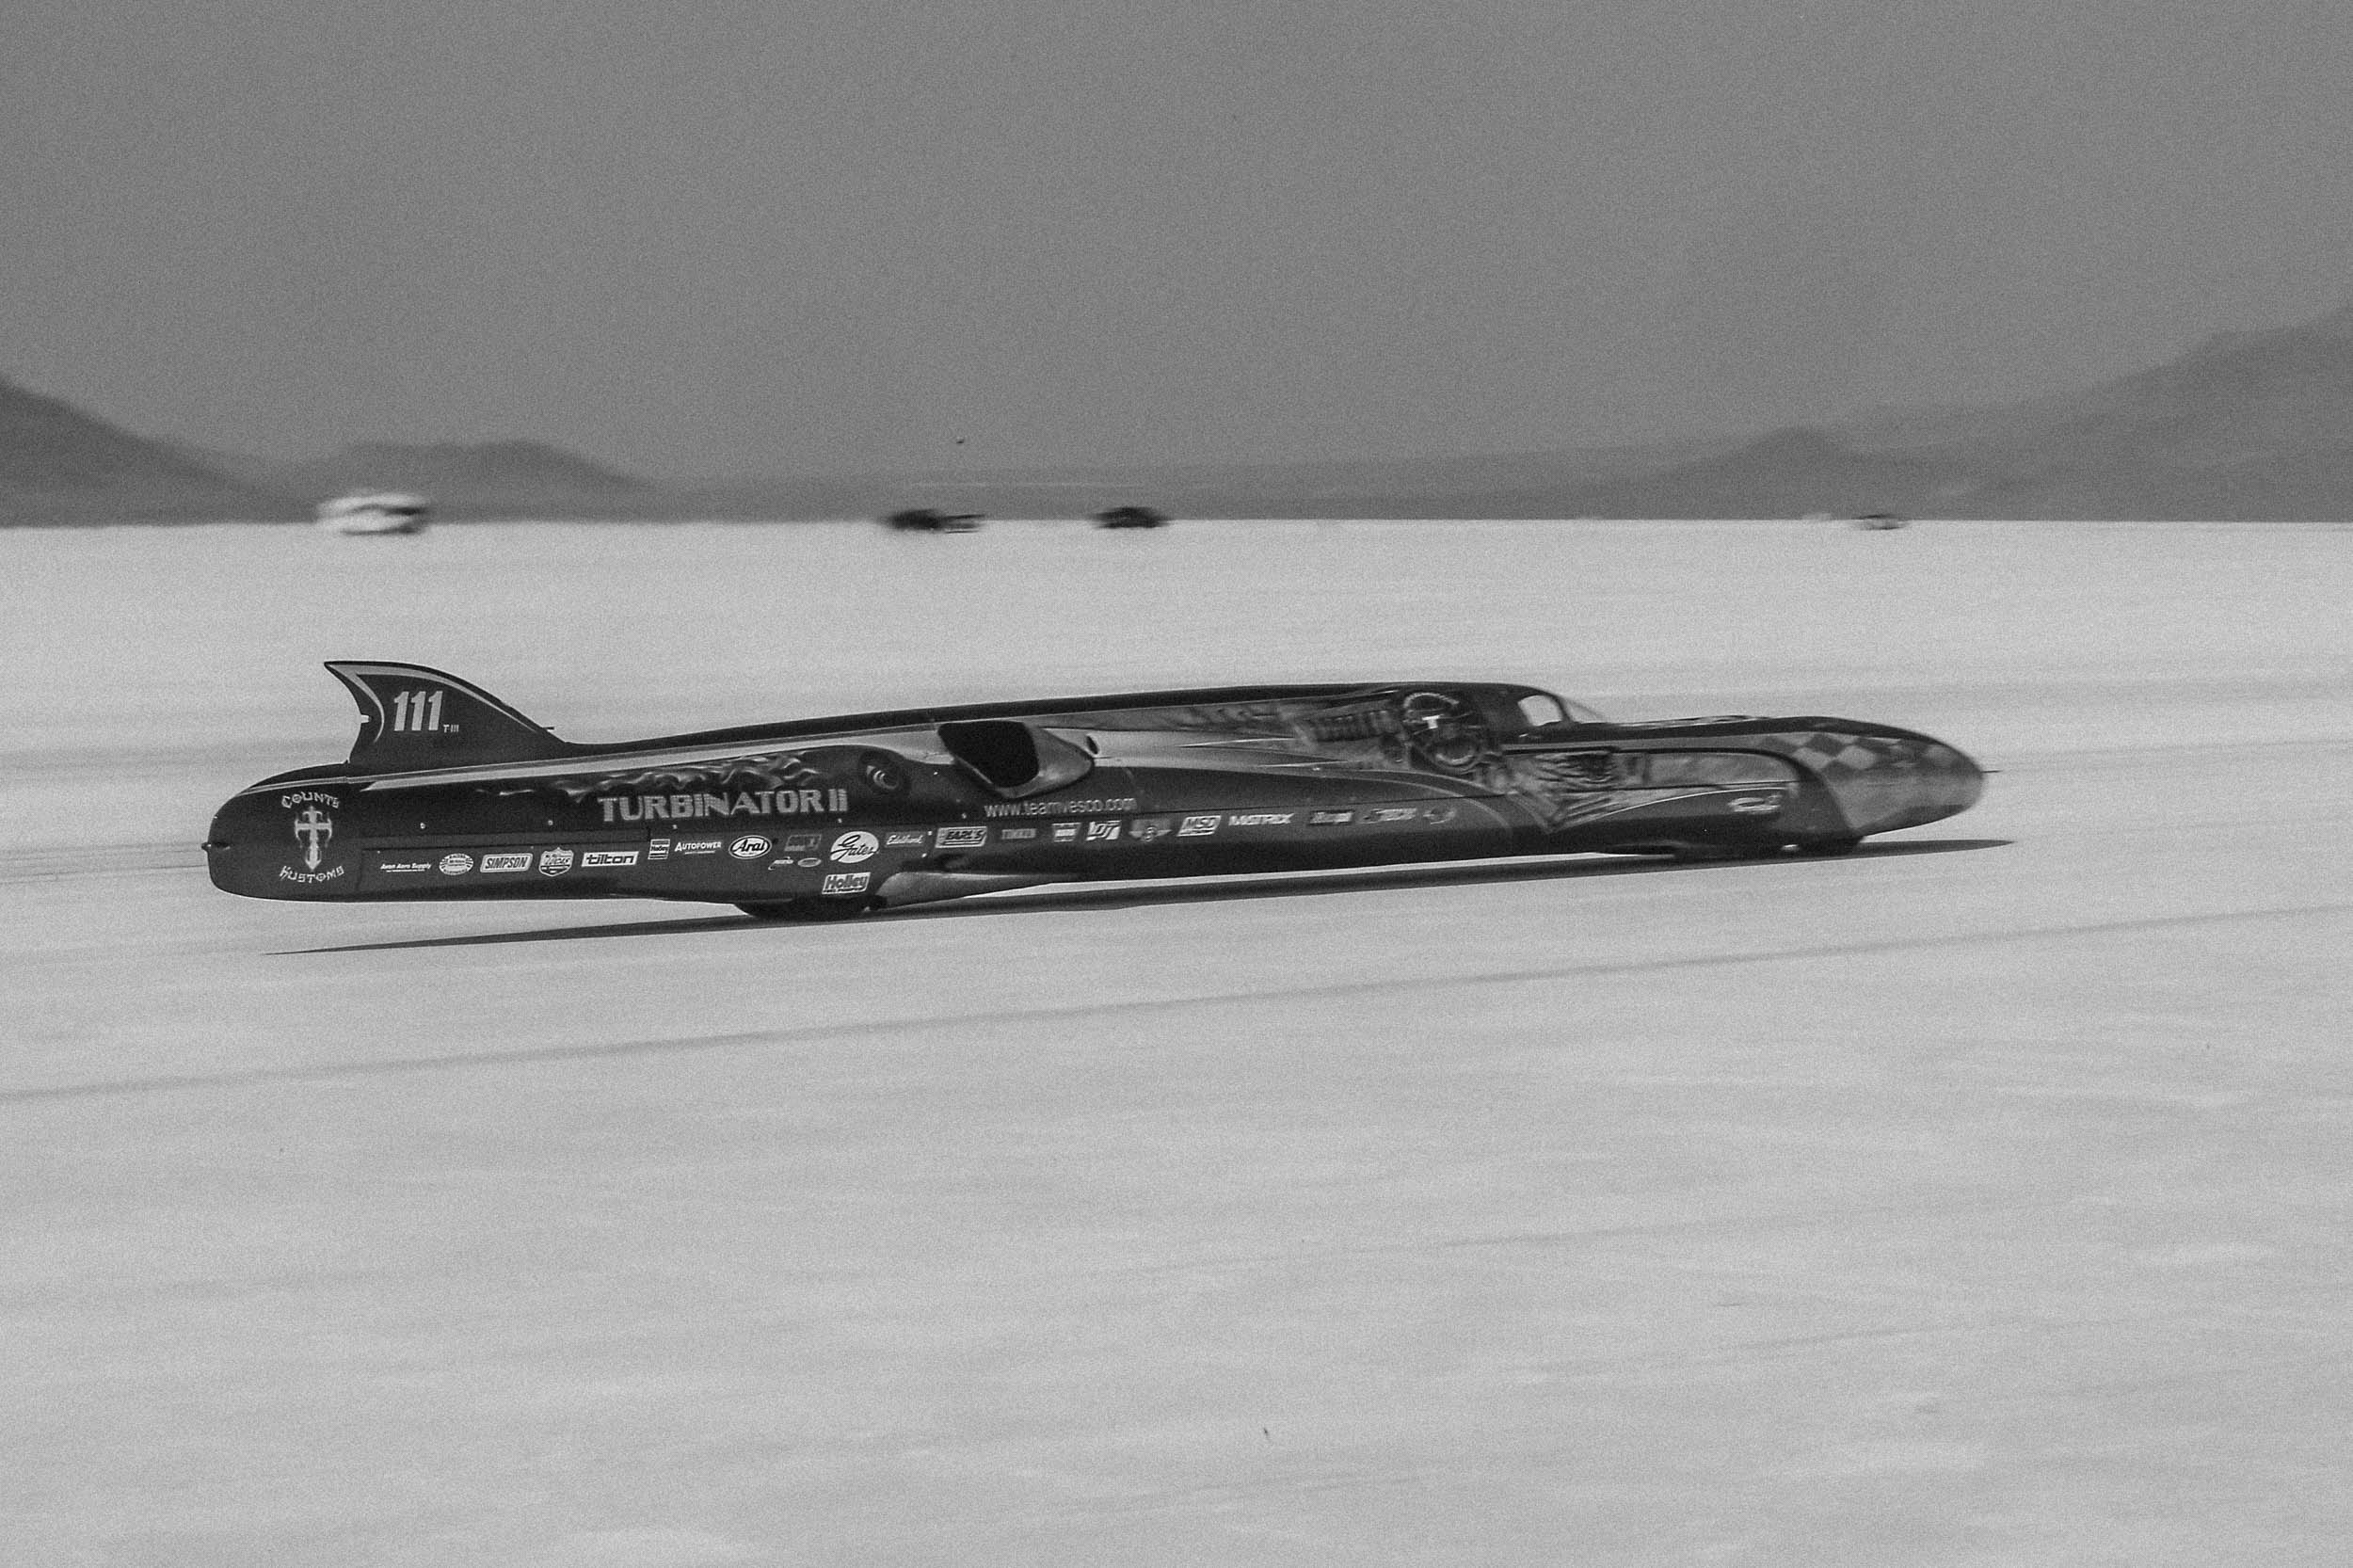 Team Vesco's Turbinator II streamliner recorded the fastest flying mile of Speed week with a 463mph pass